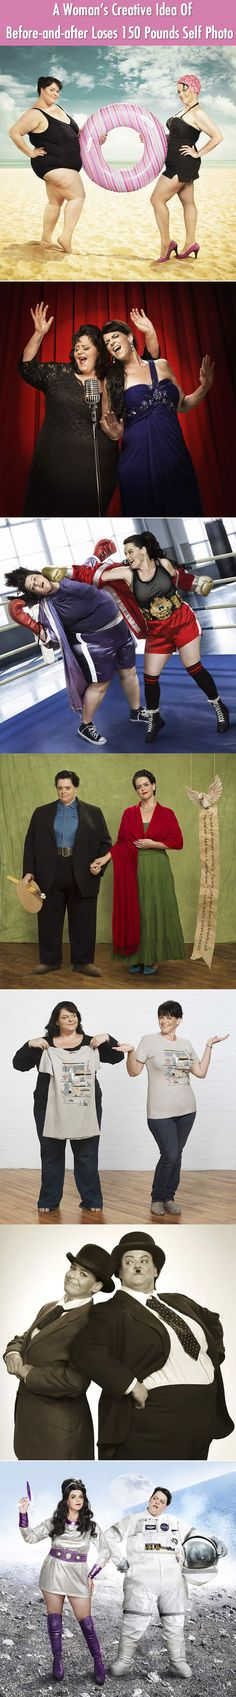 An Awesome Woman's #Creative Photos Of Before-And-After Lose 150 Pound #Weight.